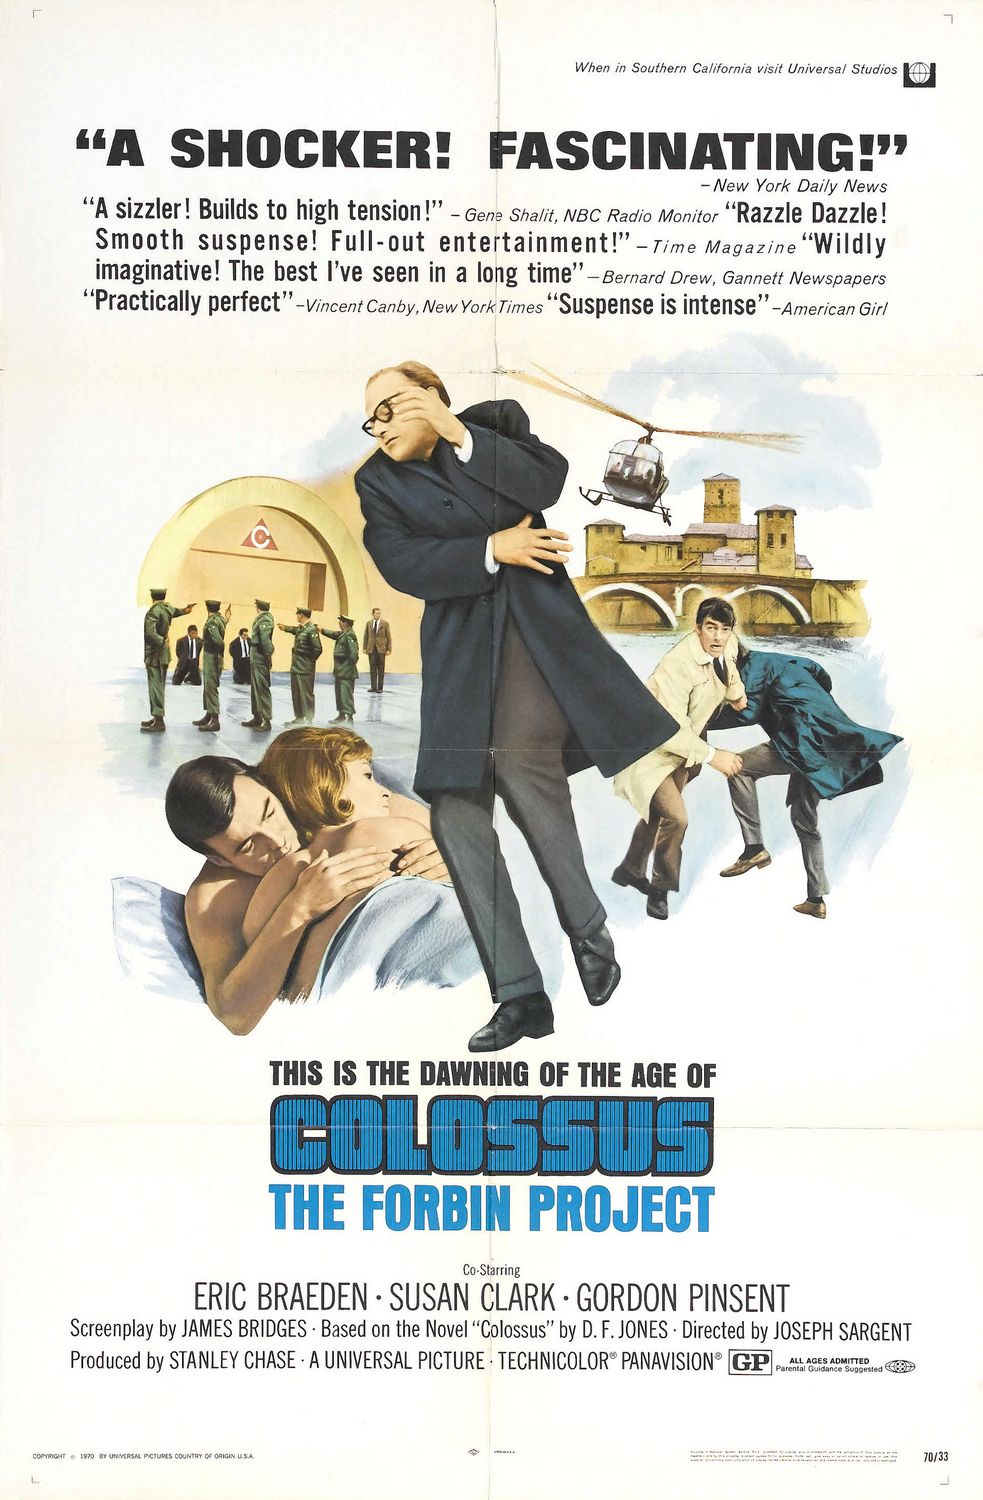 KOLOSAS. FORBINO PROJEKTAS / COLOSSUS: THE FORBIN PROJECT